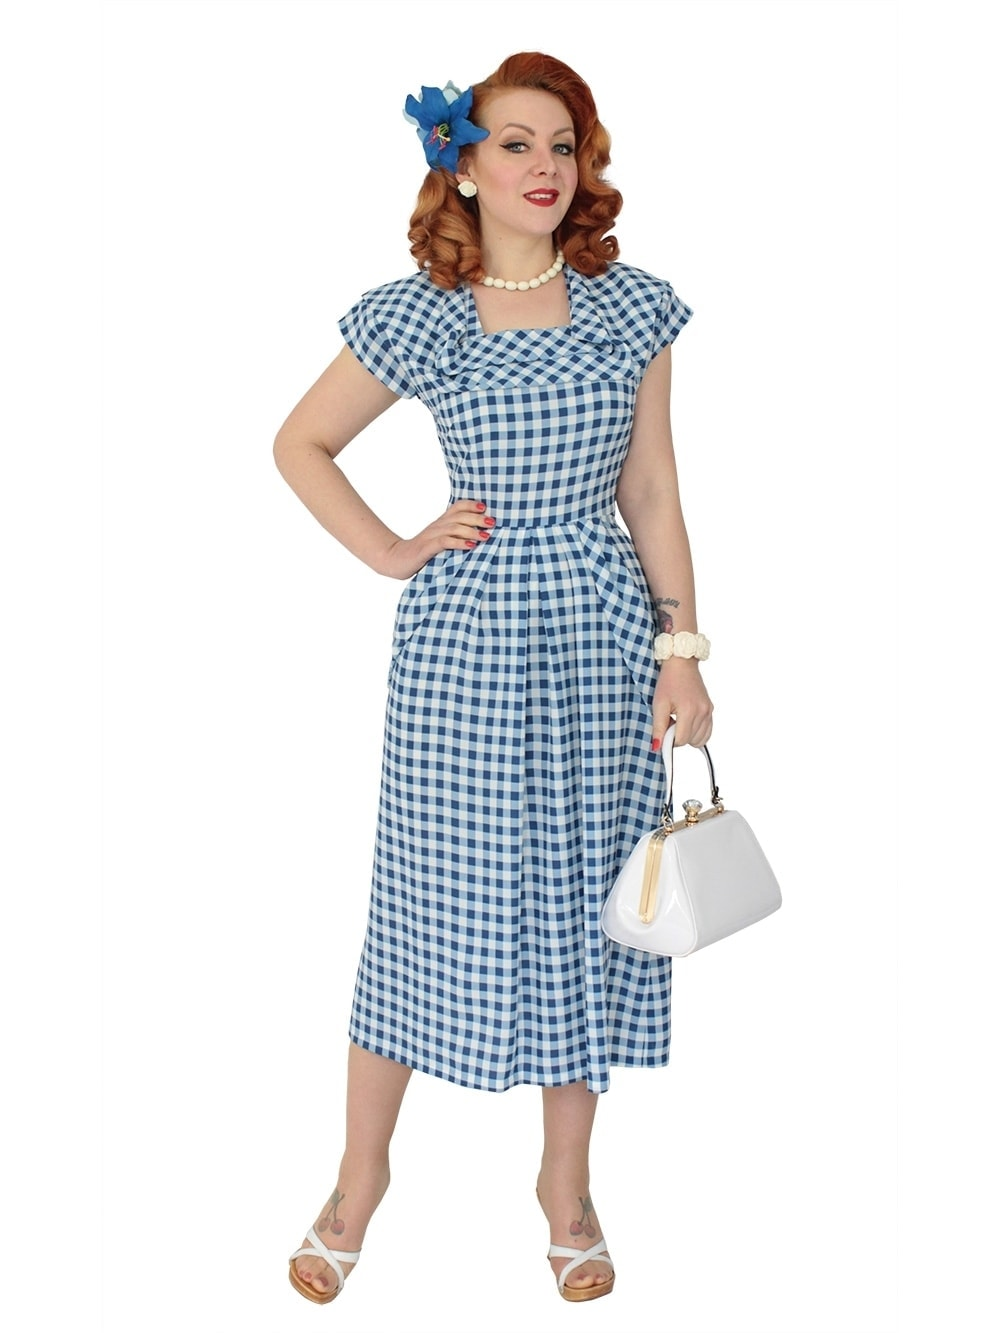 1940s Dress Lana Gingham Blue From Vivien Of Holloway